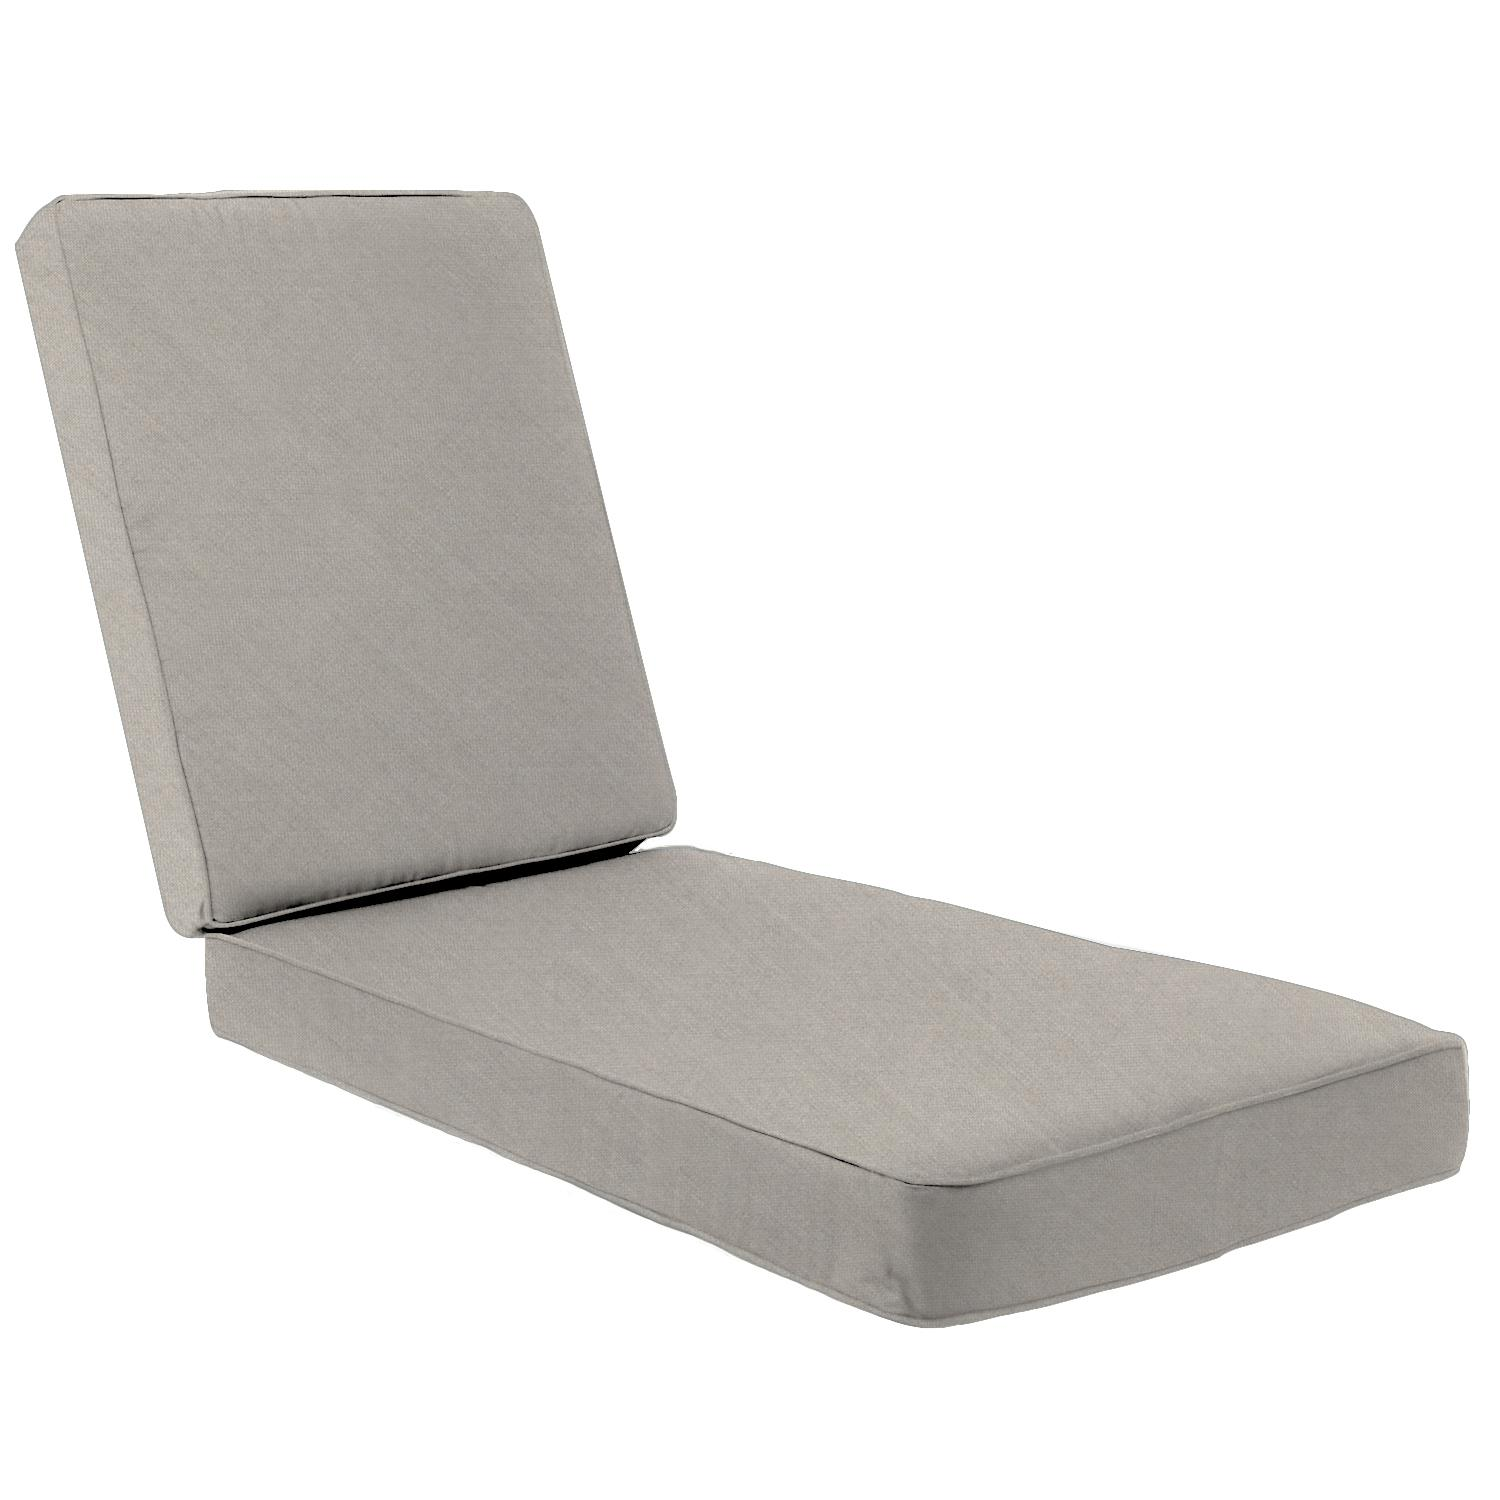 Sunbrella Cast Ash Long Outdoor Replacement Chaise Lounge